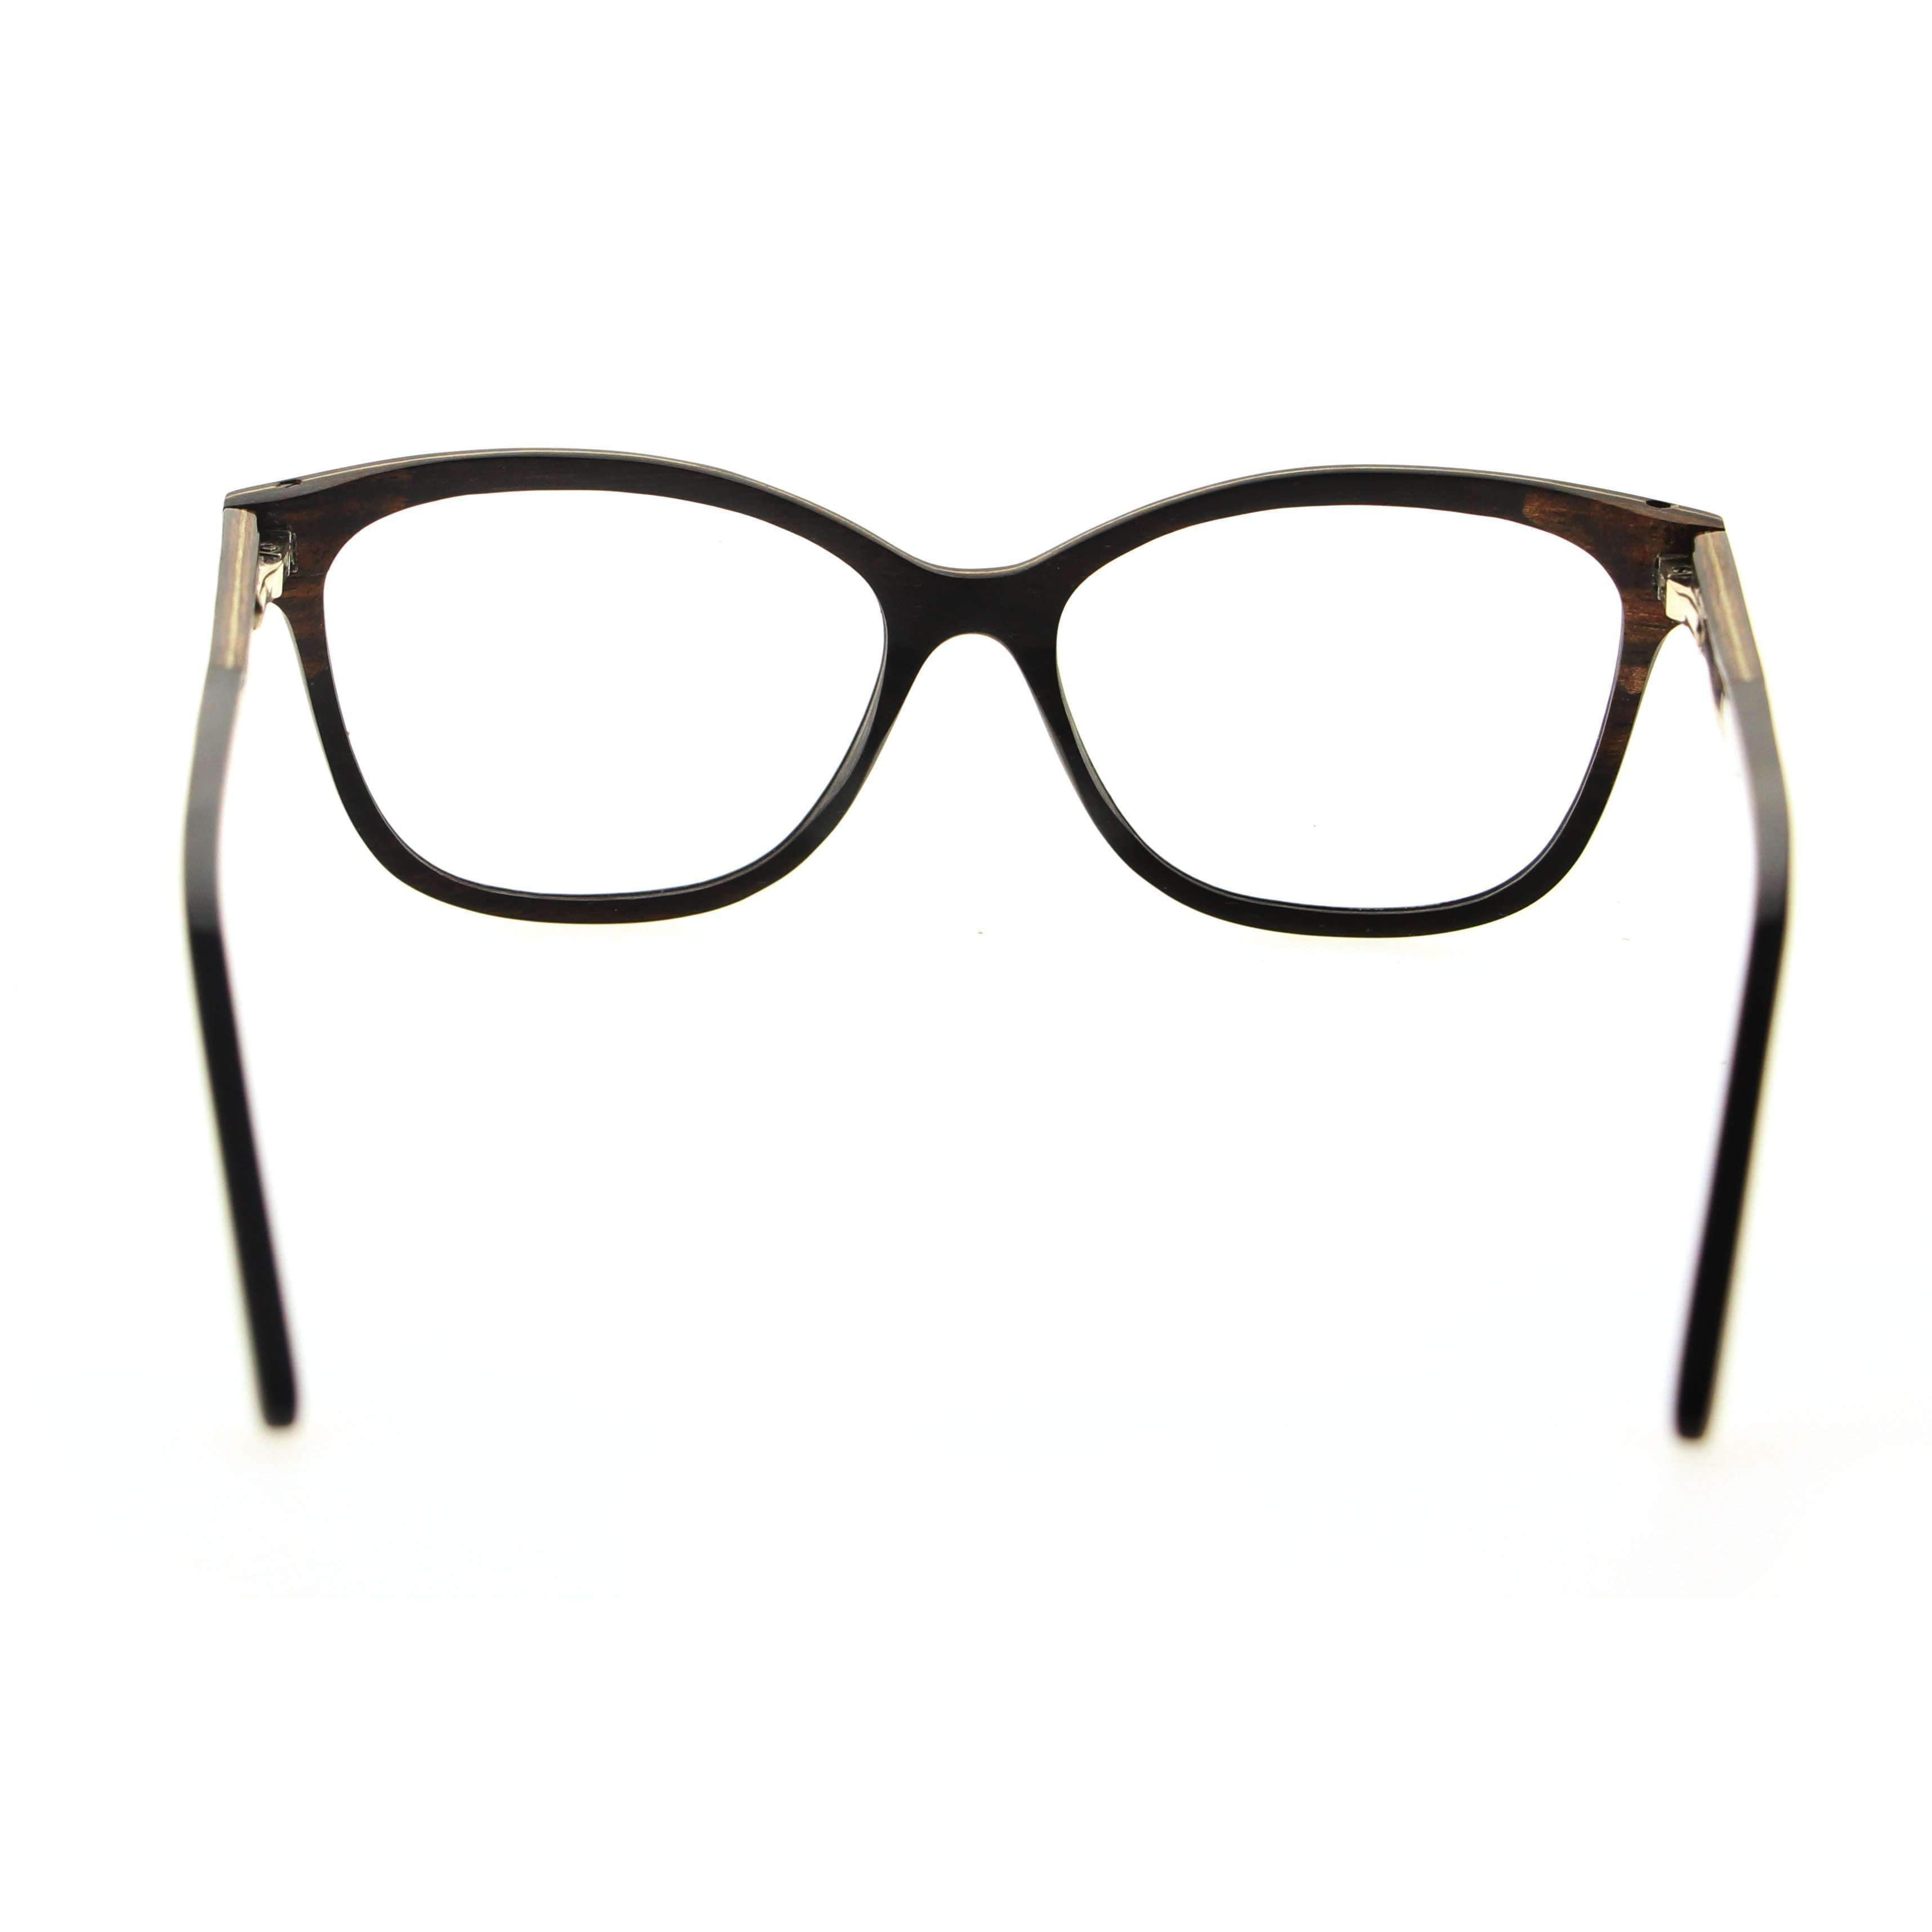 Vilo Optical Wooden Glasses - Heron: